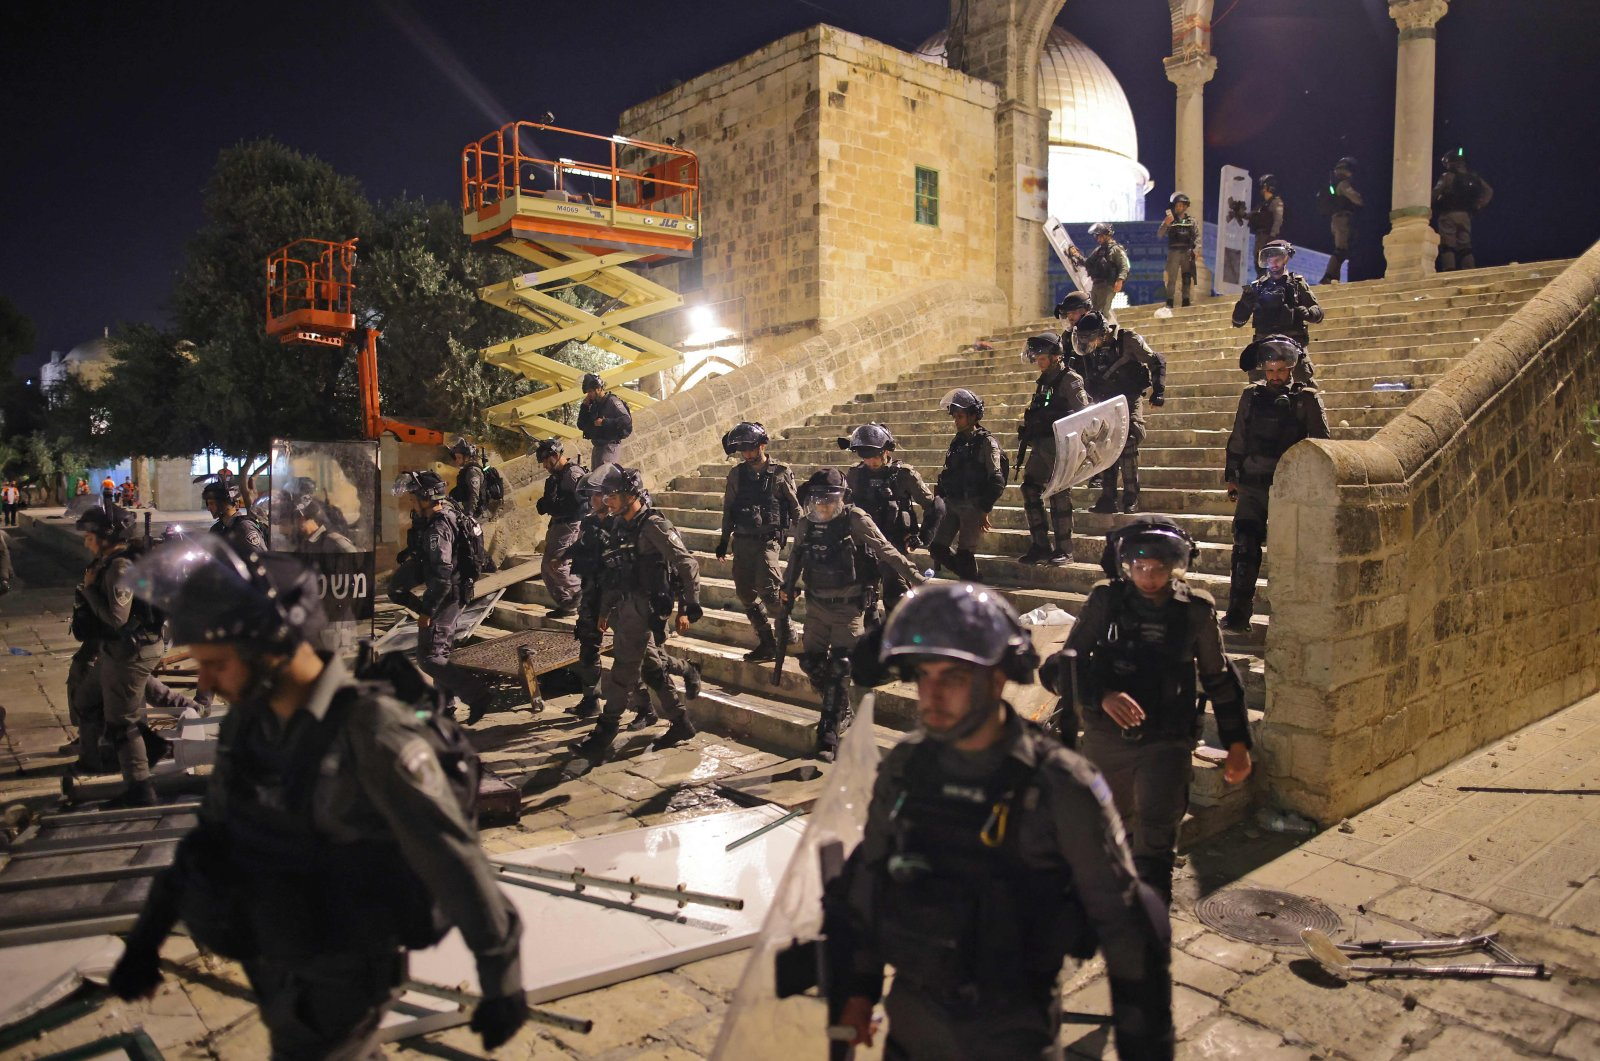 Israeli security forces deploy in Jerusalem's Al-Aqsa Mosque during their attack on worshippers at the mosque, East Jerusalem, occupied Palestine, May 10, 2021. (AFP Photo)